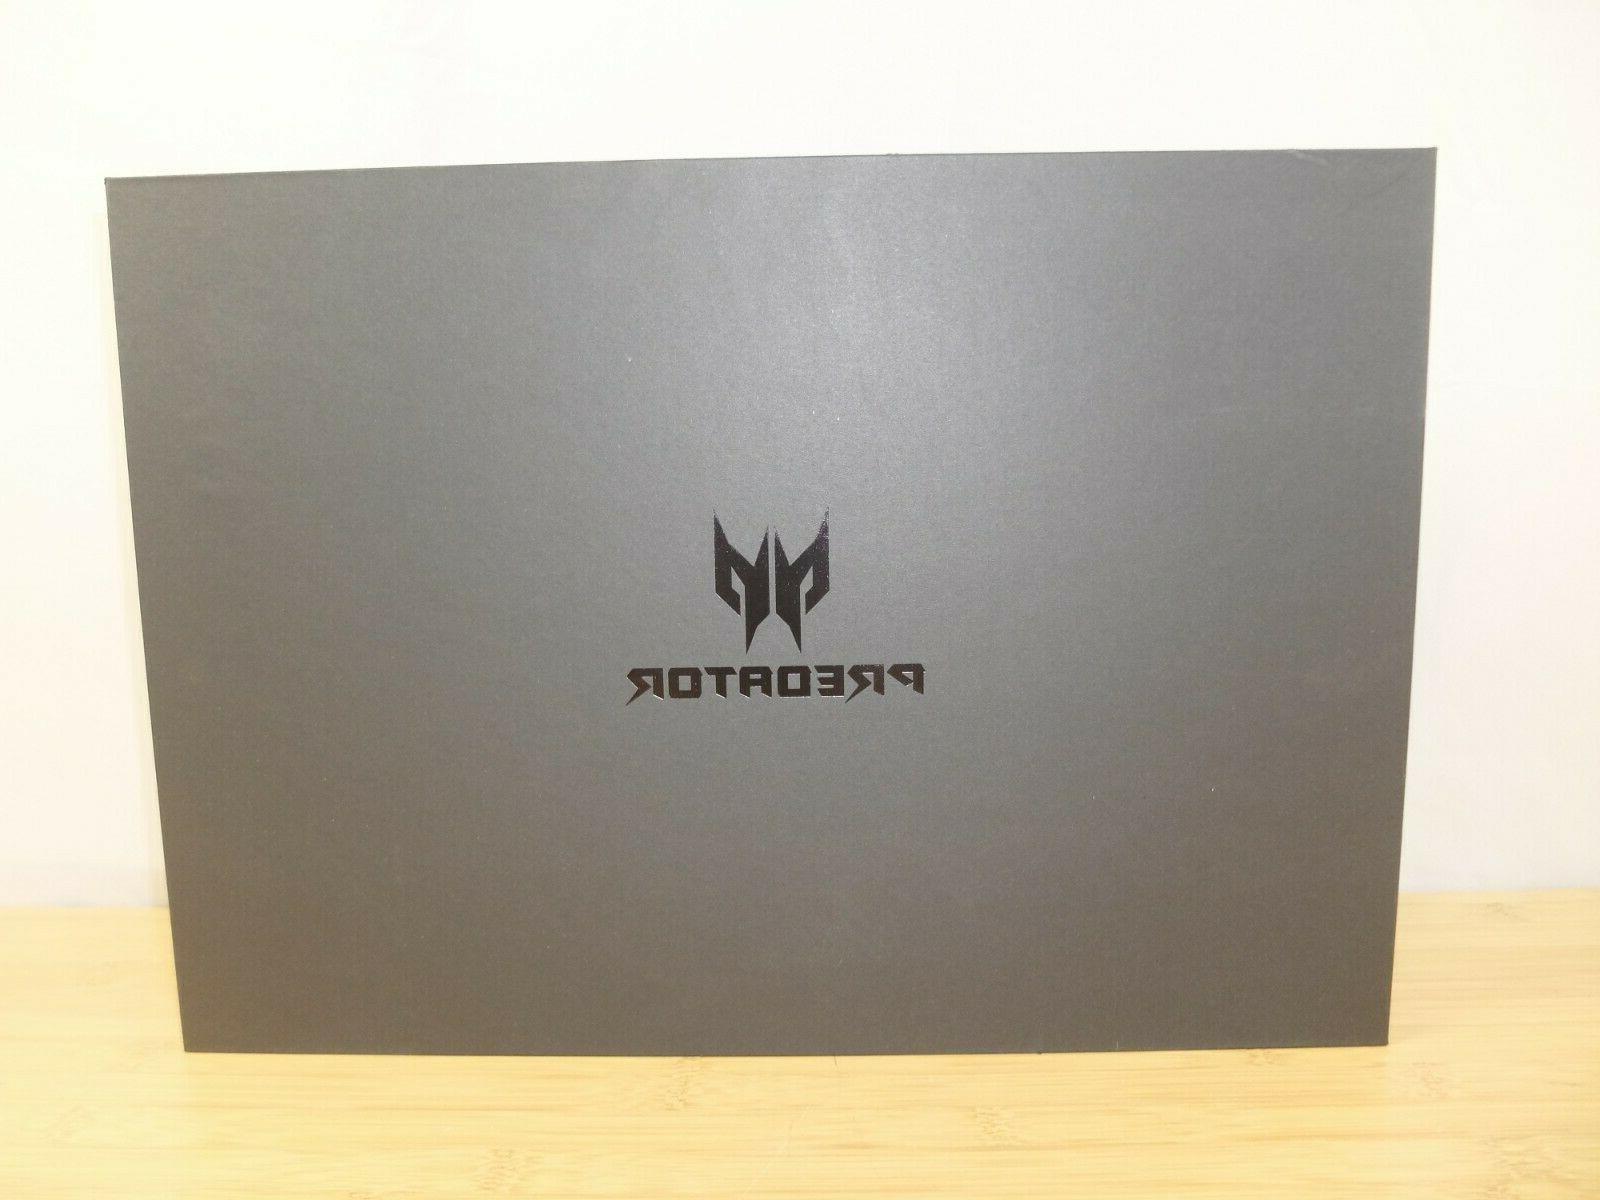 predator helios 300 gaming laptop